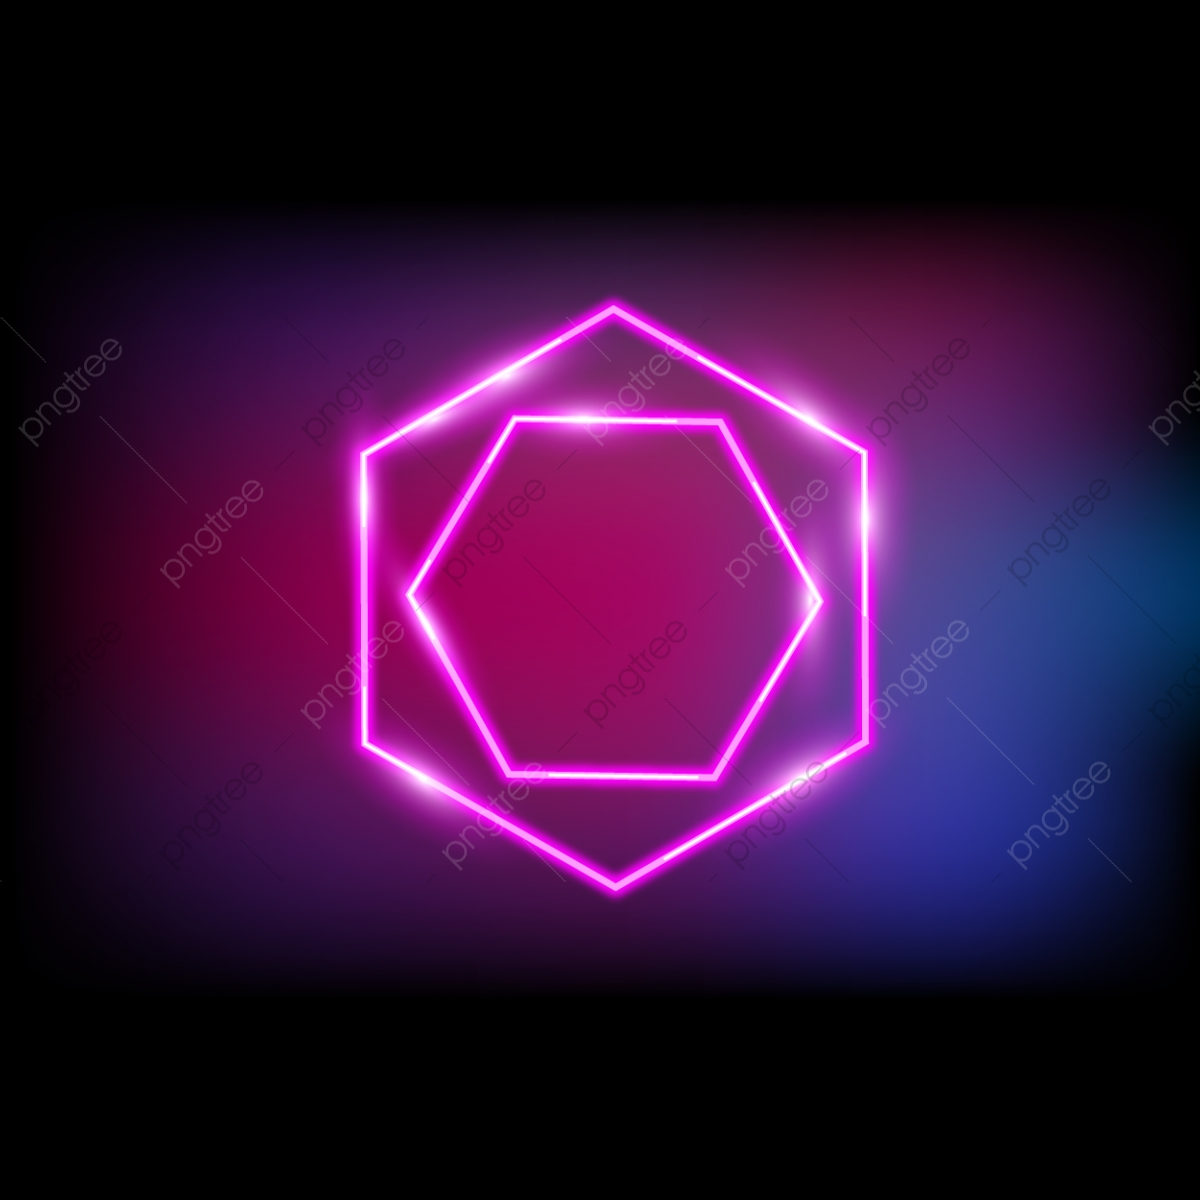 Neon Light, Glow, Neon, Rainbow PNG and Vector with Transparent